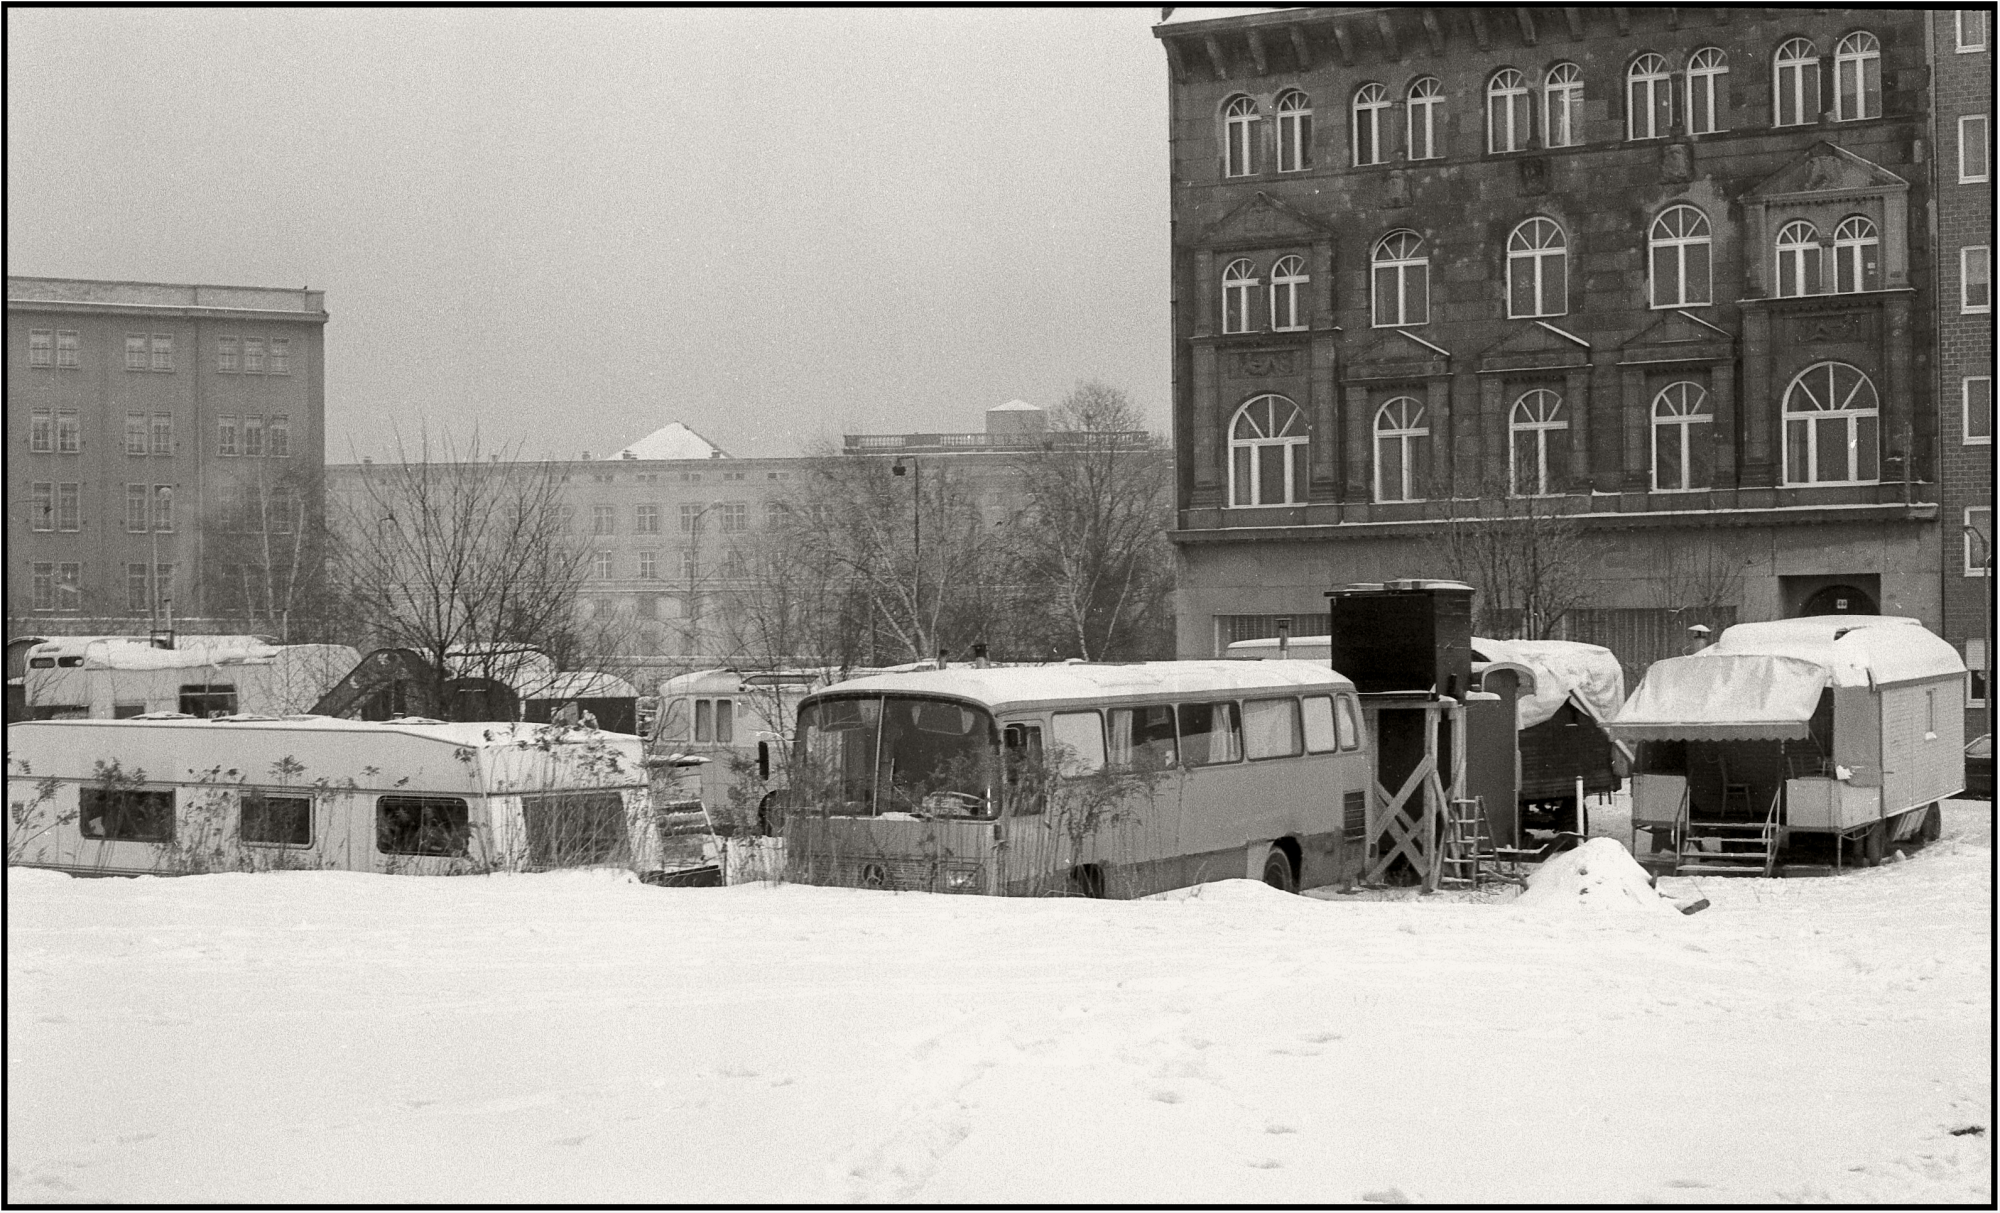 Rollheimer - Winter in Berlin   20.1.1987